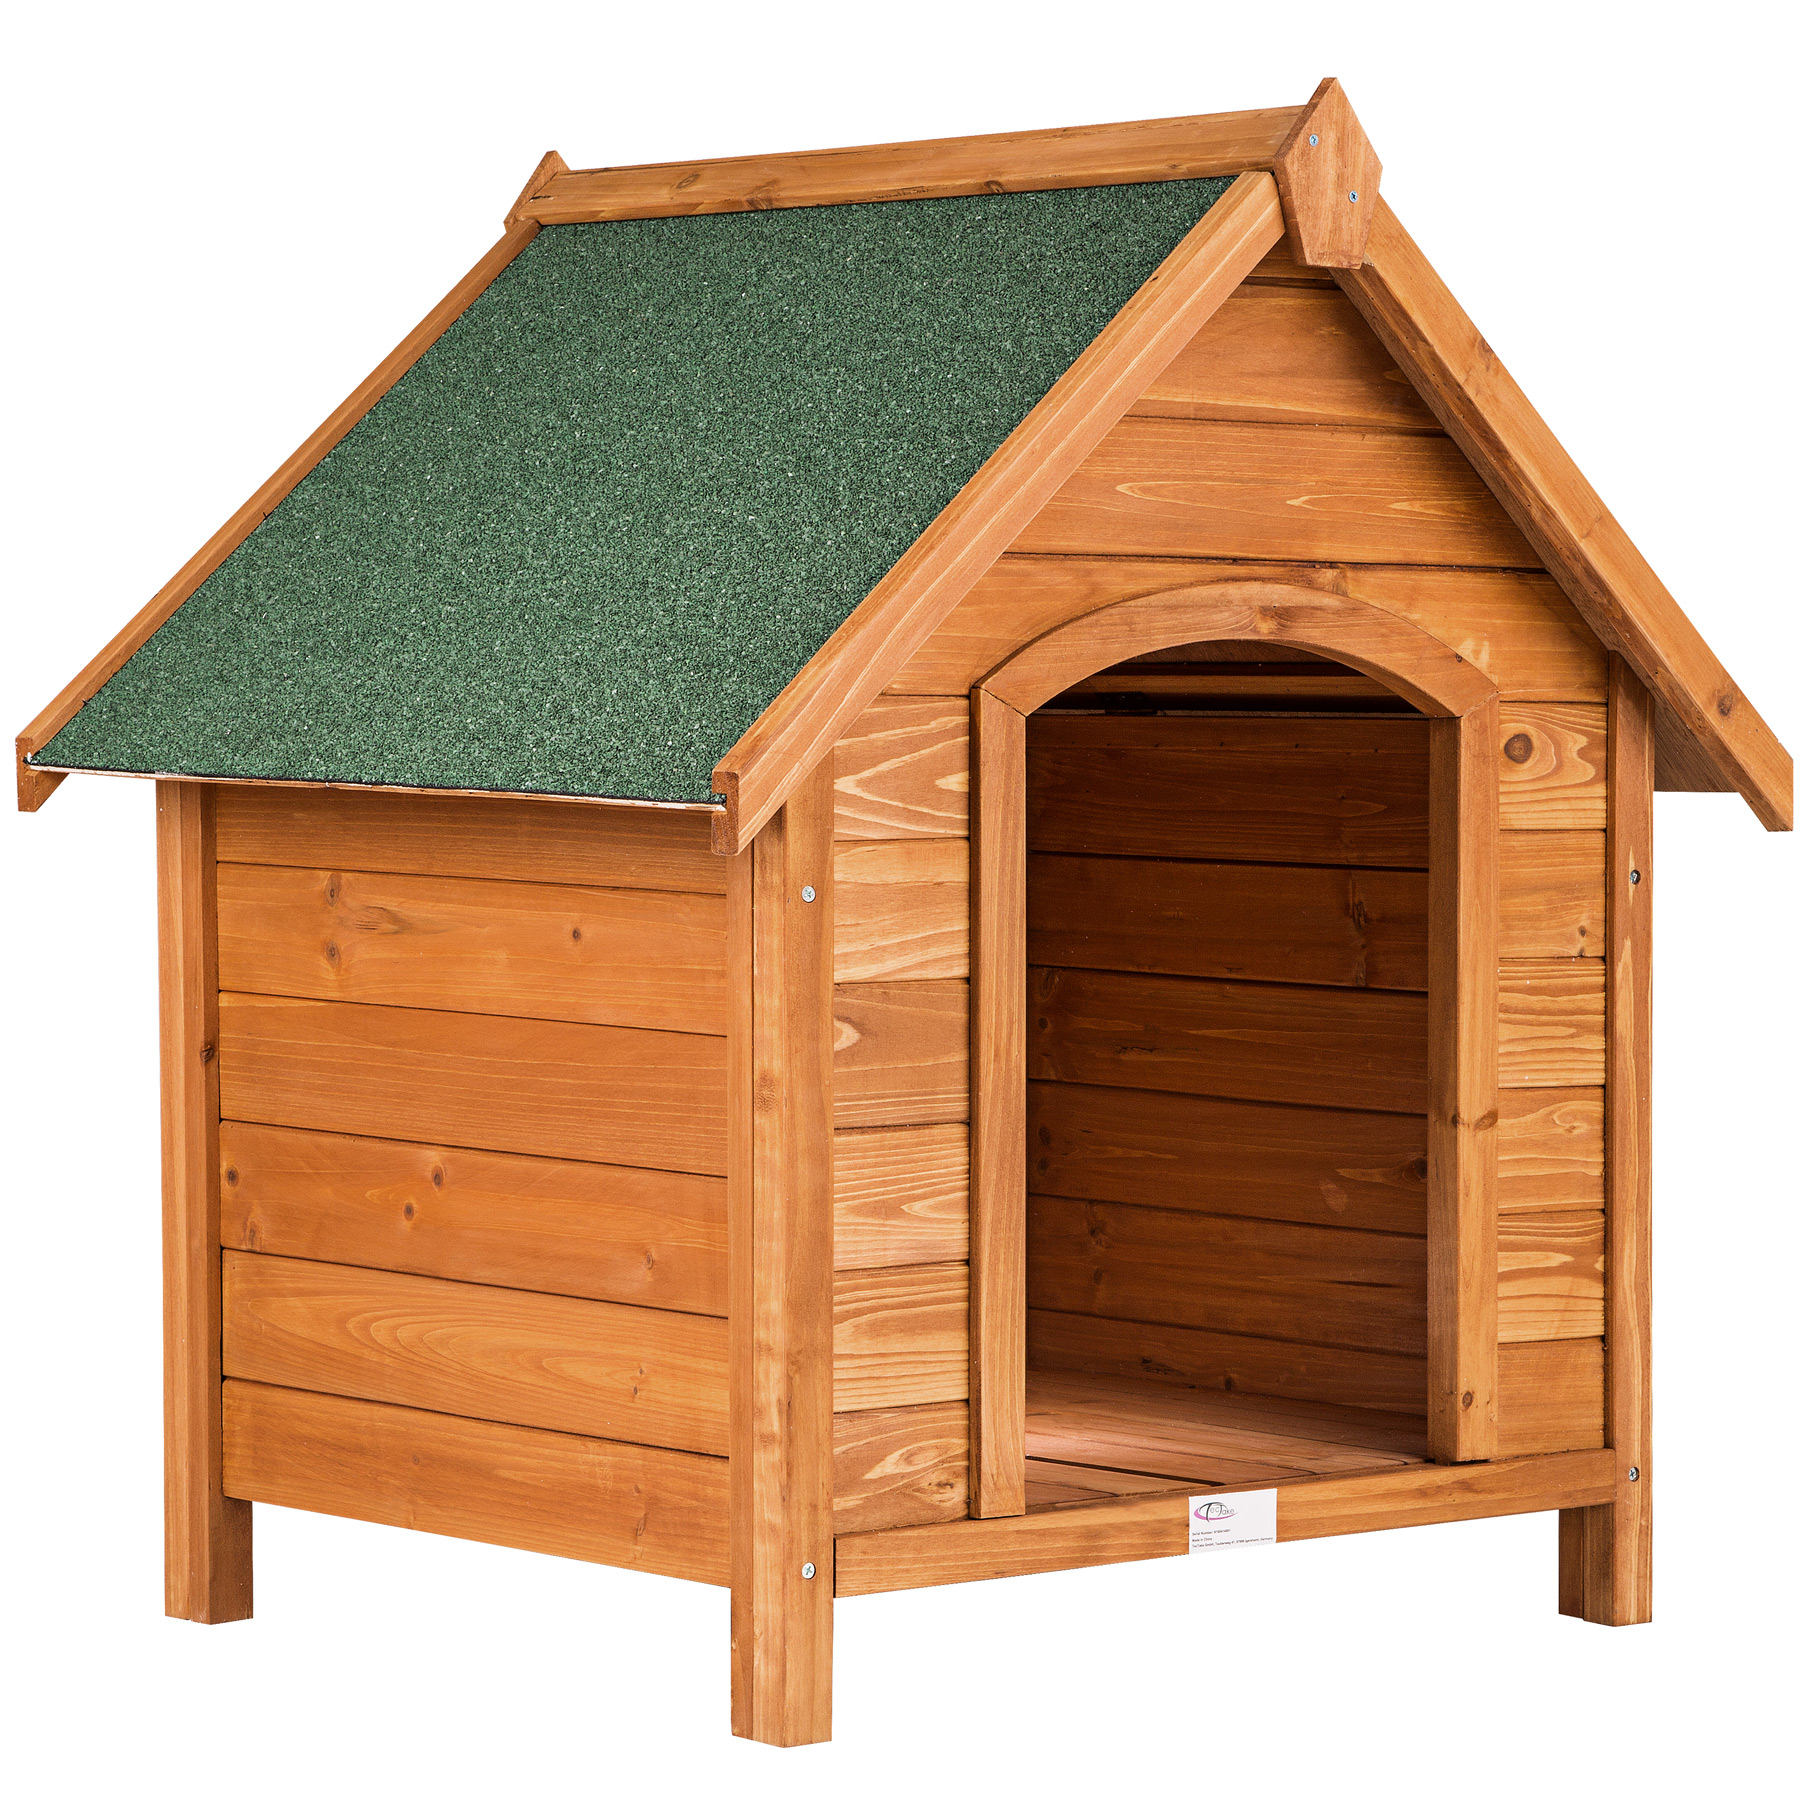 Wooden xxl dog kennel house tar roof garden crate cage for Xxl dog house